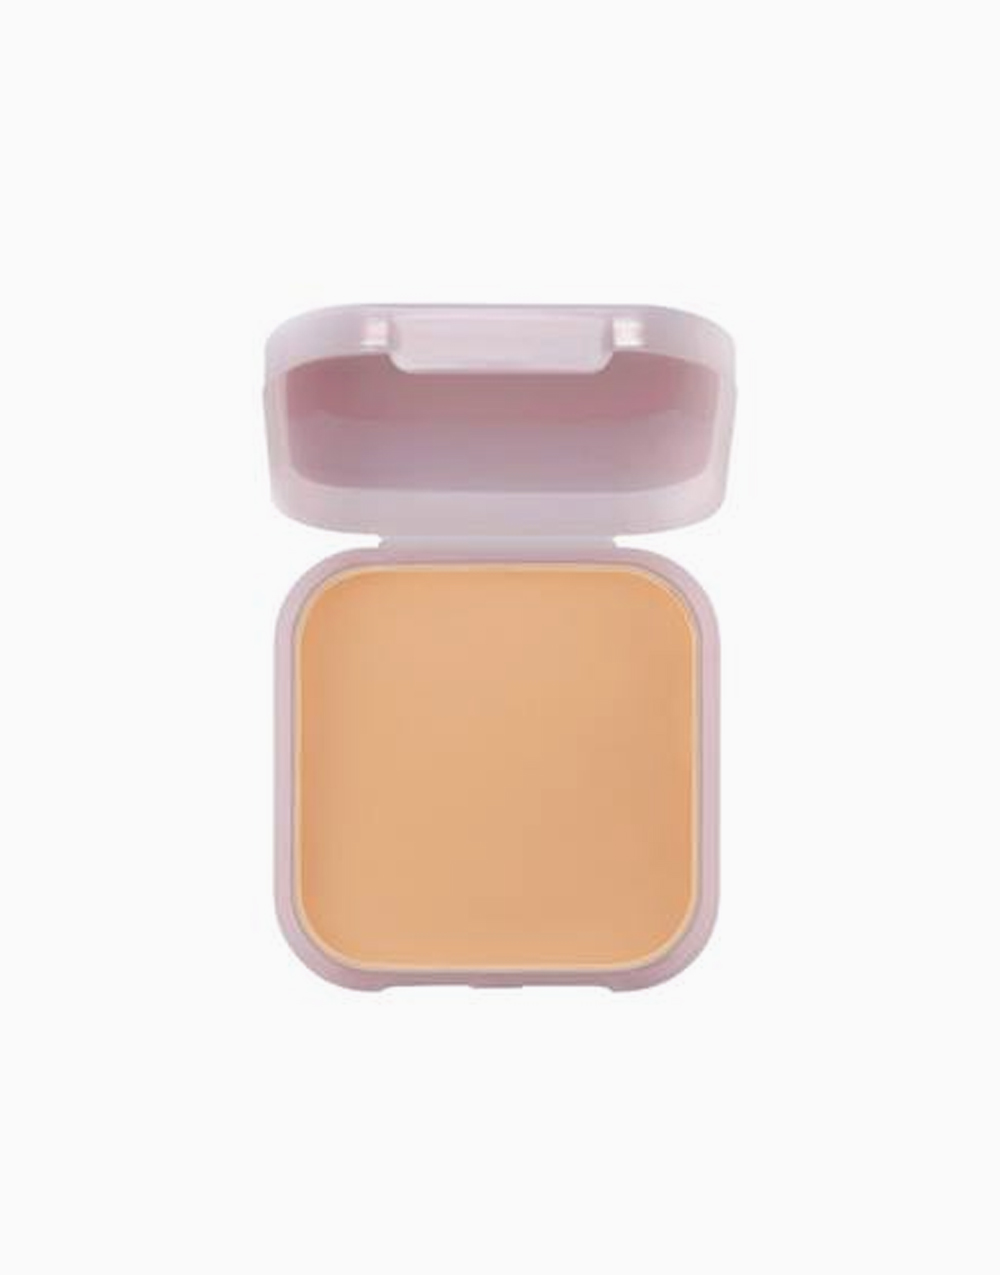 Clear Smooth All in One Refill by Maybelline | Honey